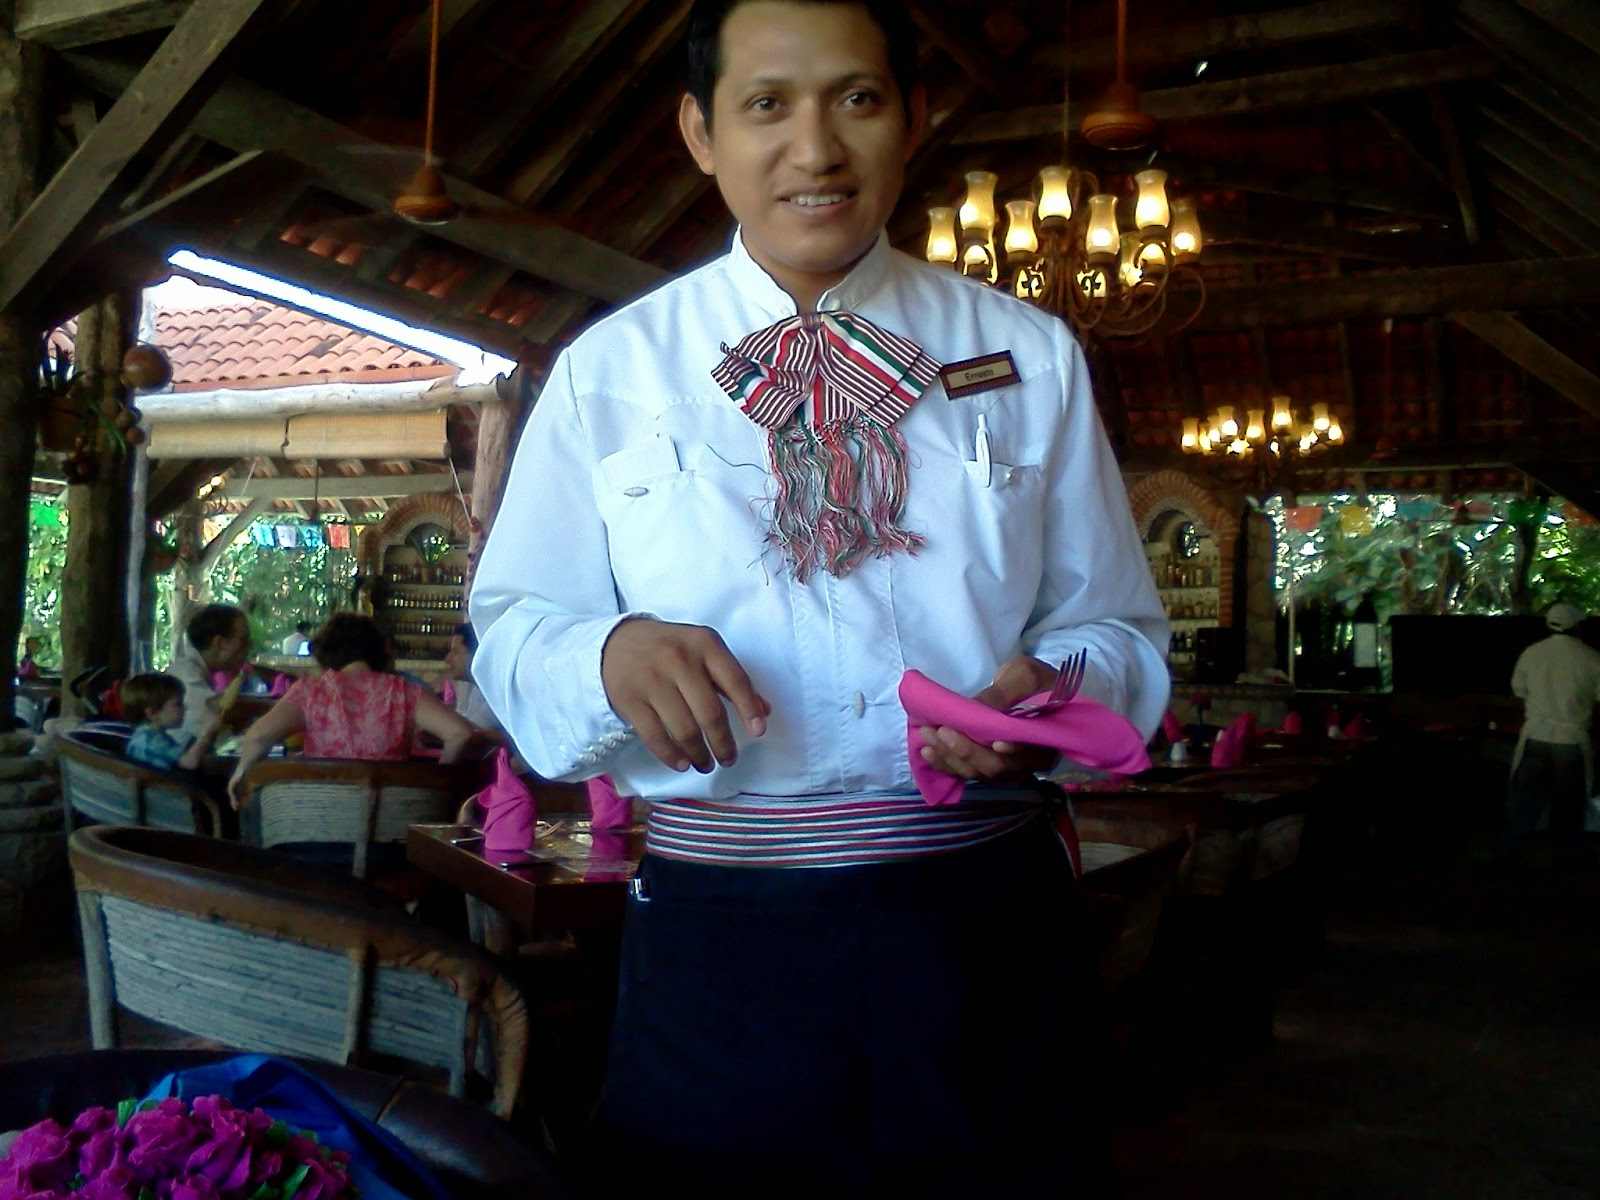 Waiter Wearing Traditional Mexican Costume